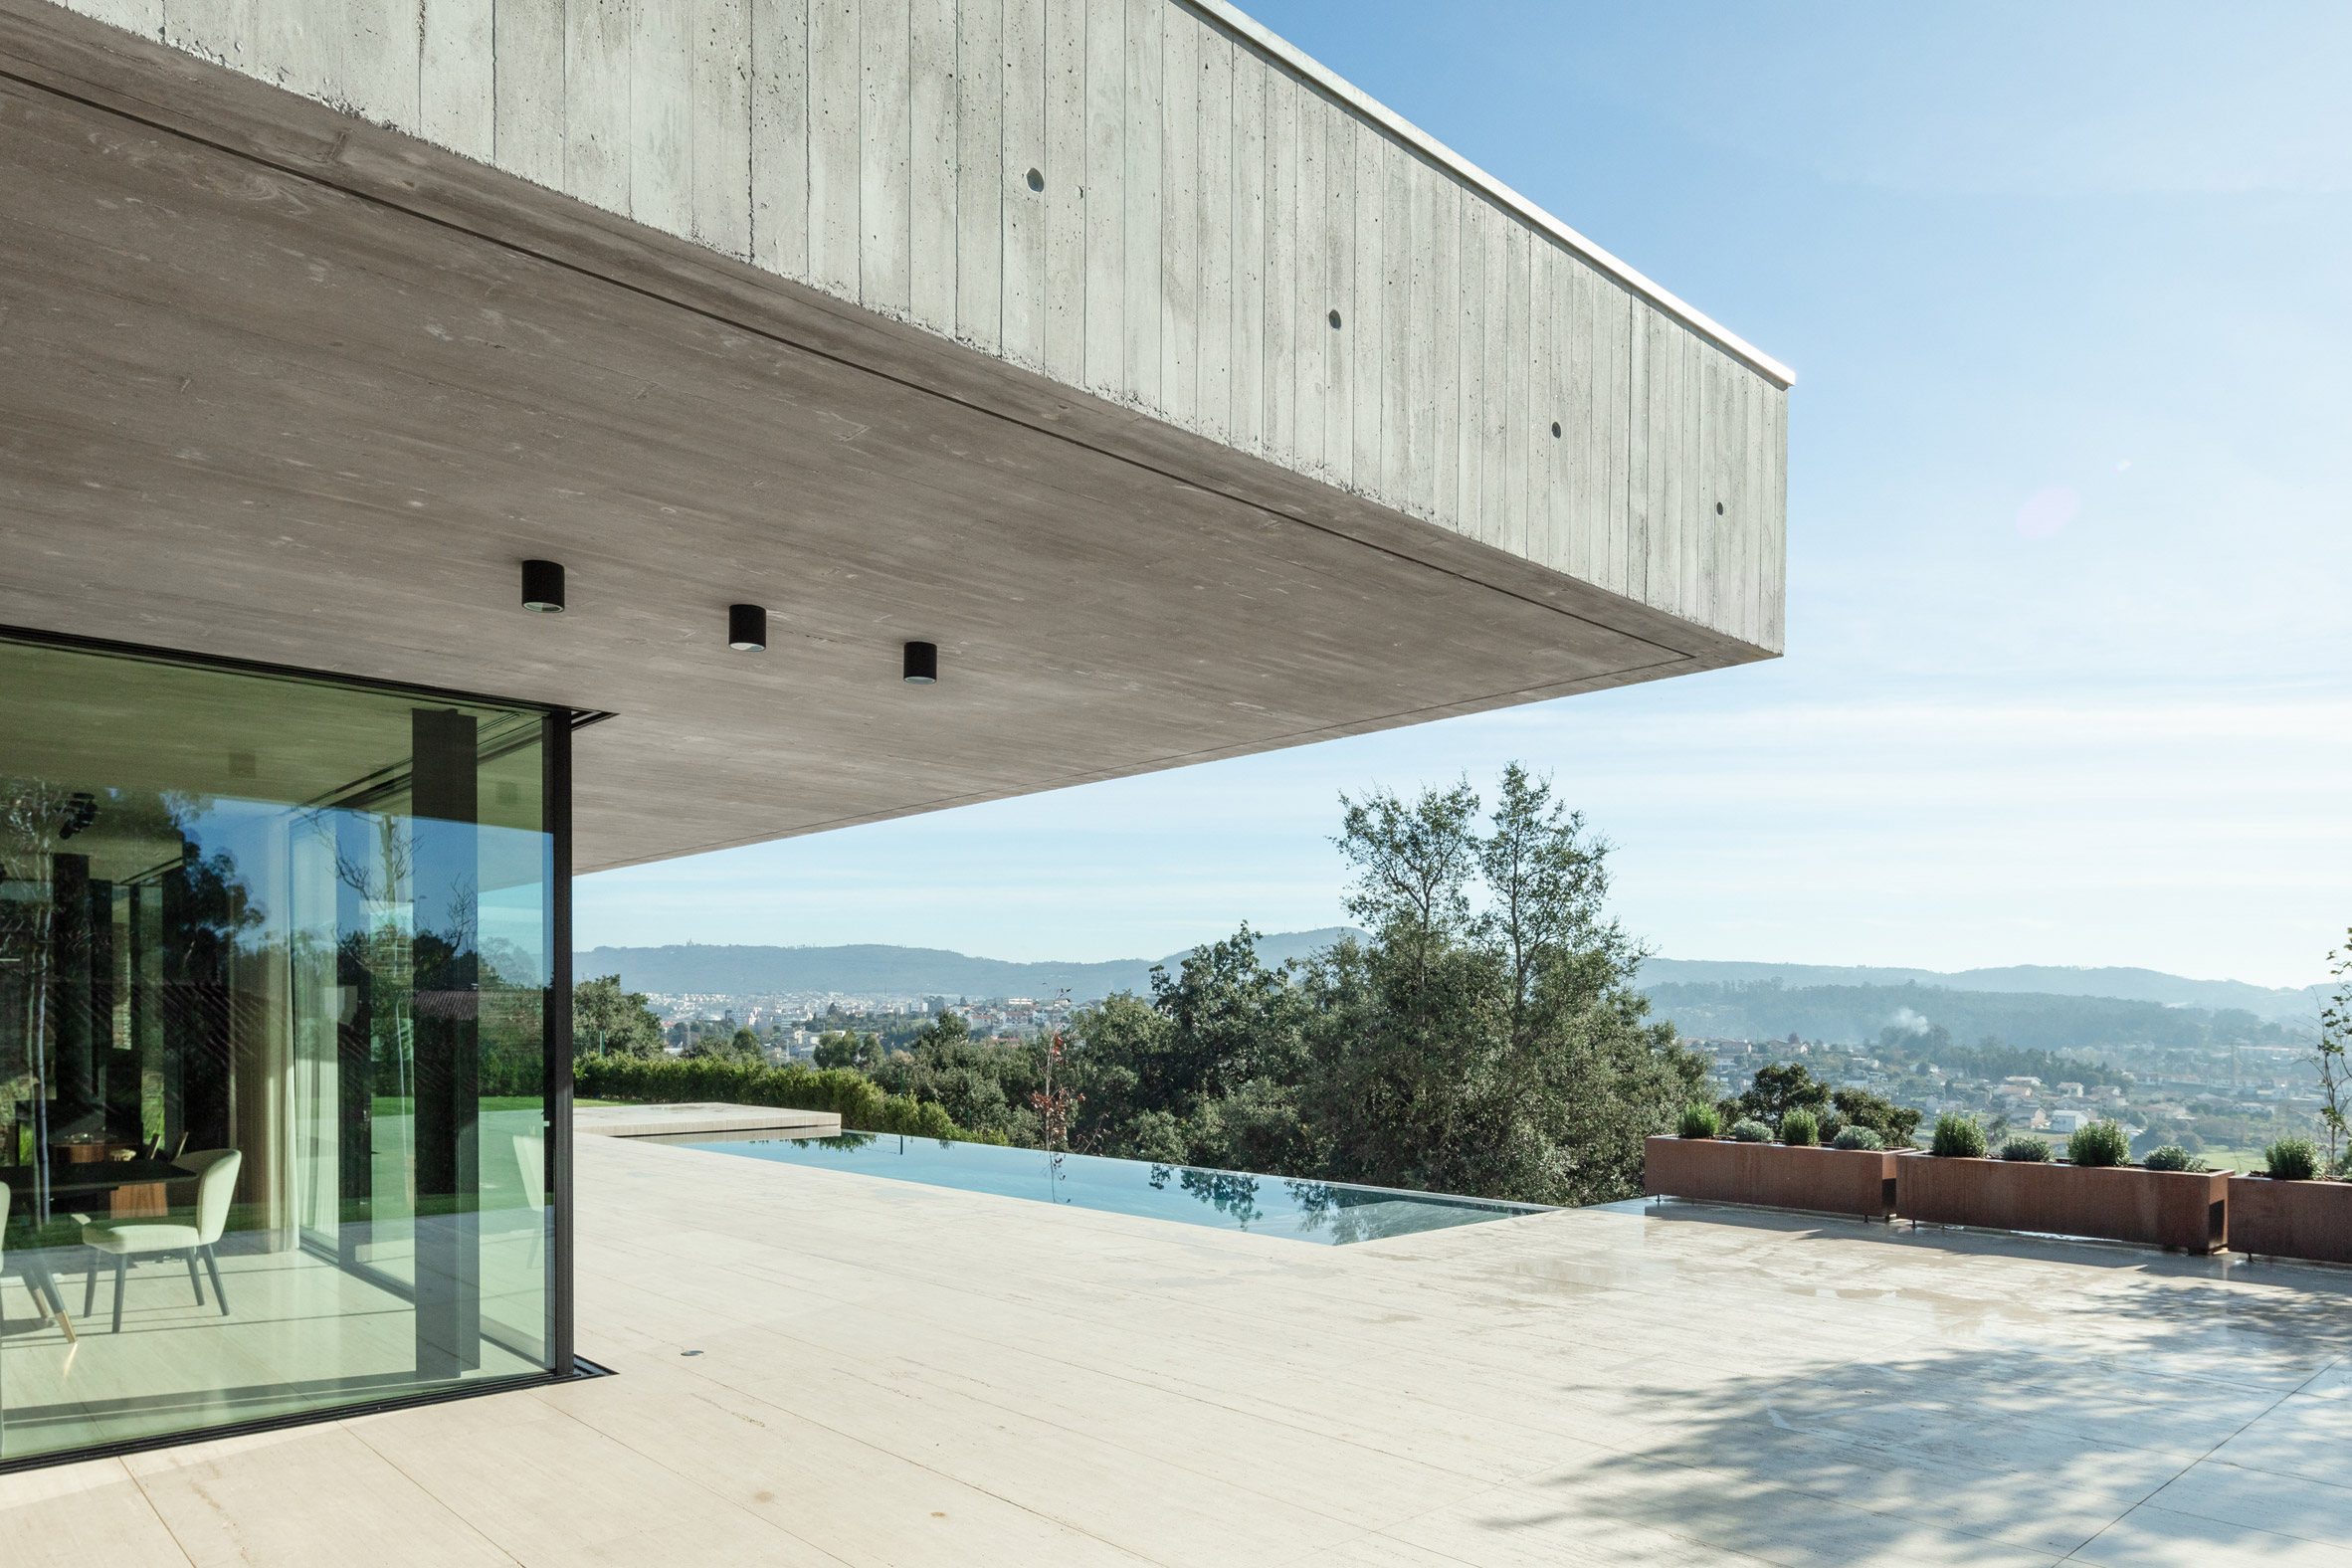 Concrete house with infinity pool